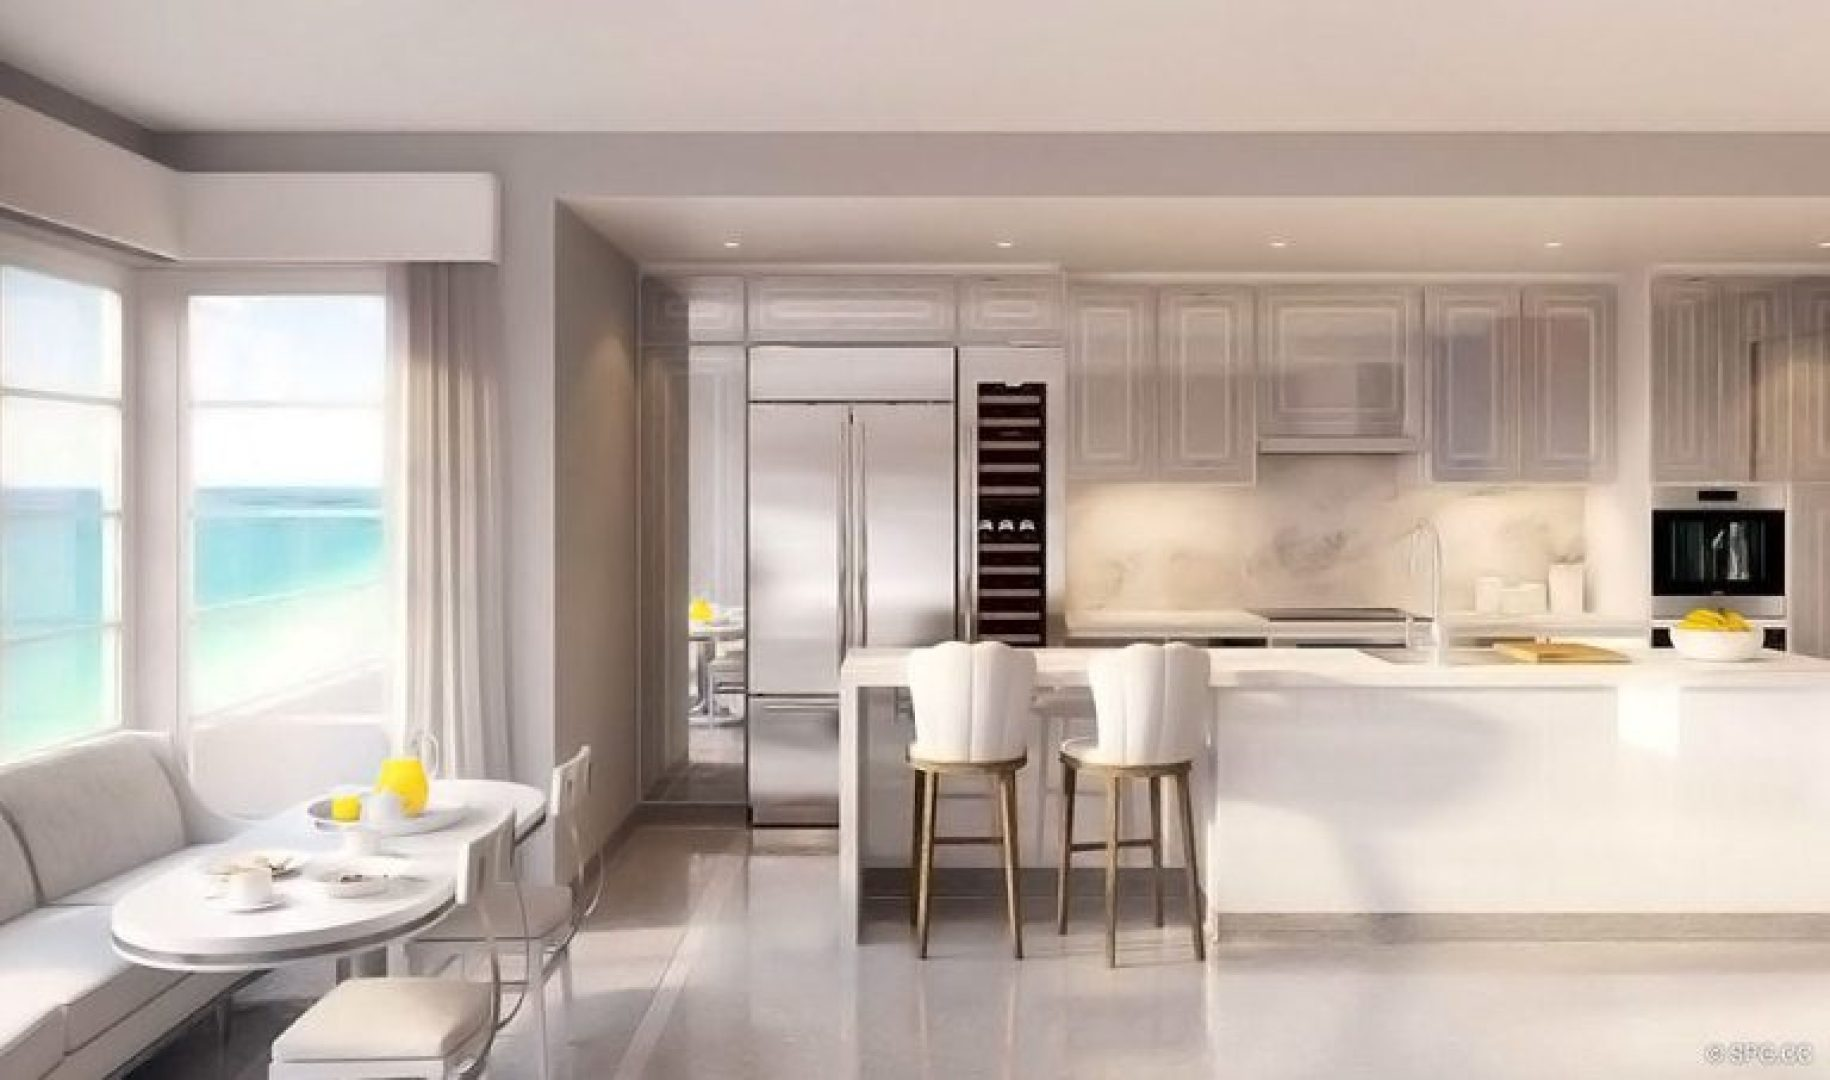 hotels in miami with kitchen best floor faena versailles classic luxury oceanfront condos